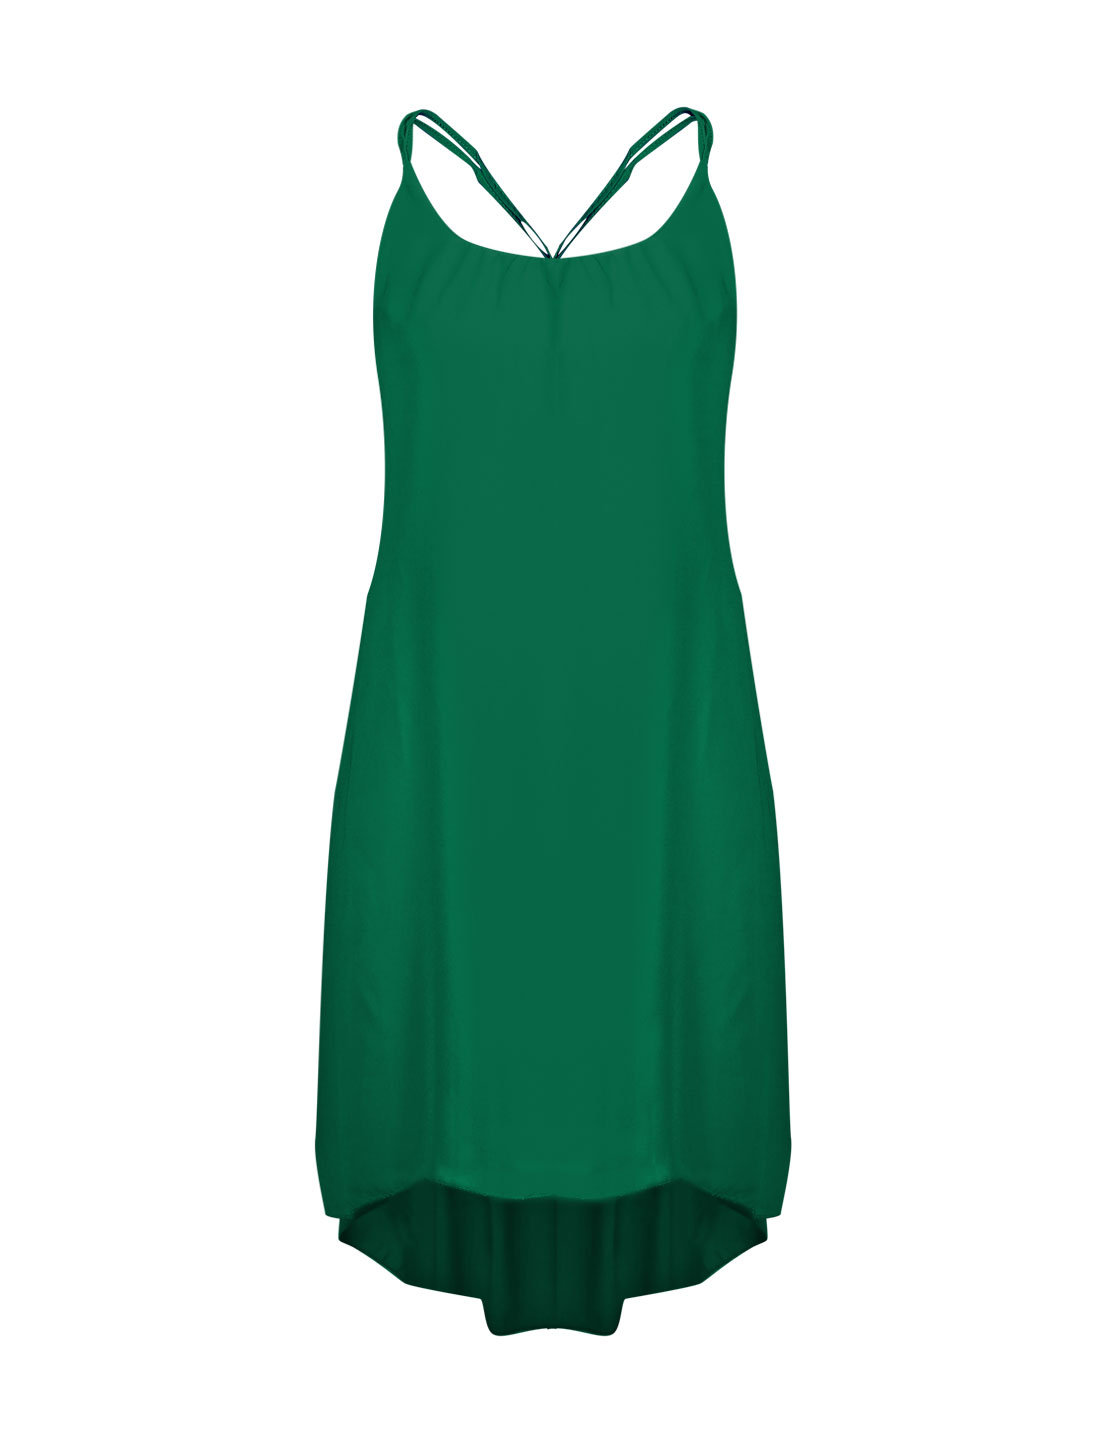 Women Sleeveless Assymetrical Hem Spaghetti Strapes Casual Chiffon Dress Green S